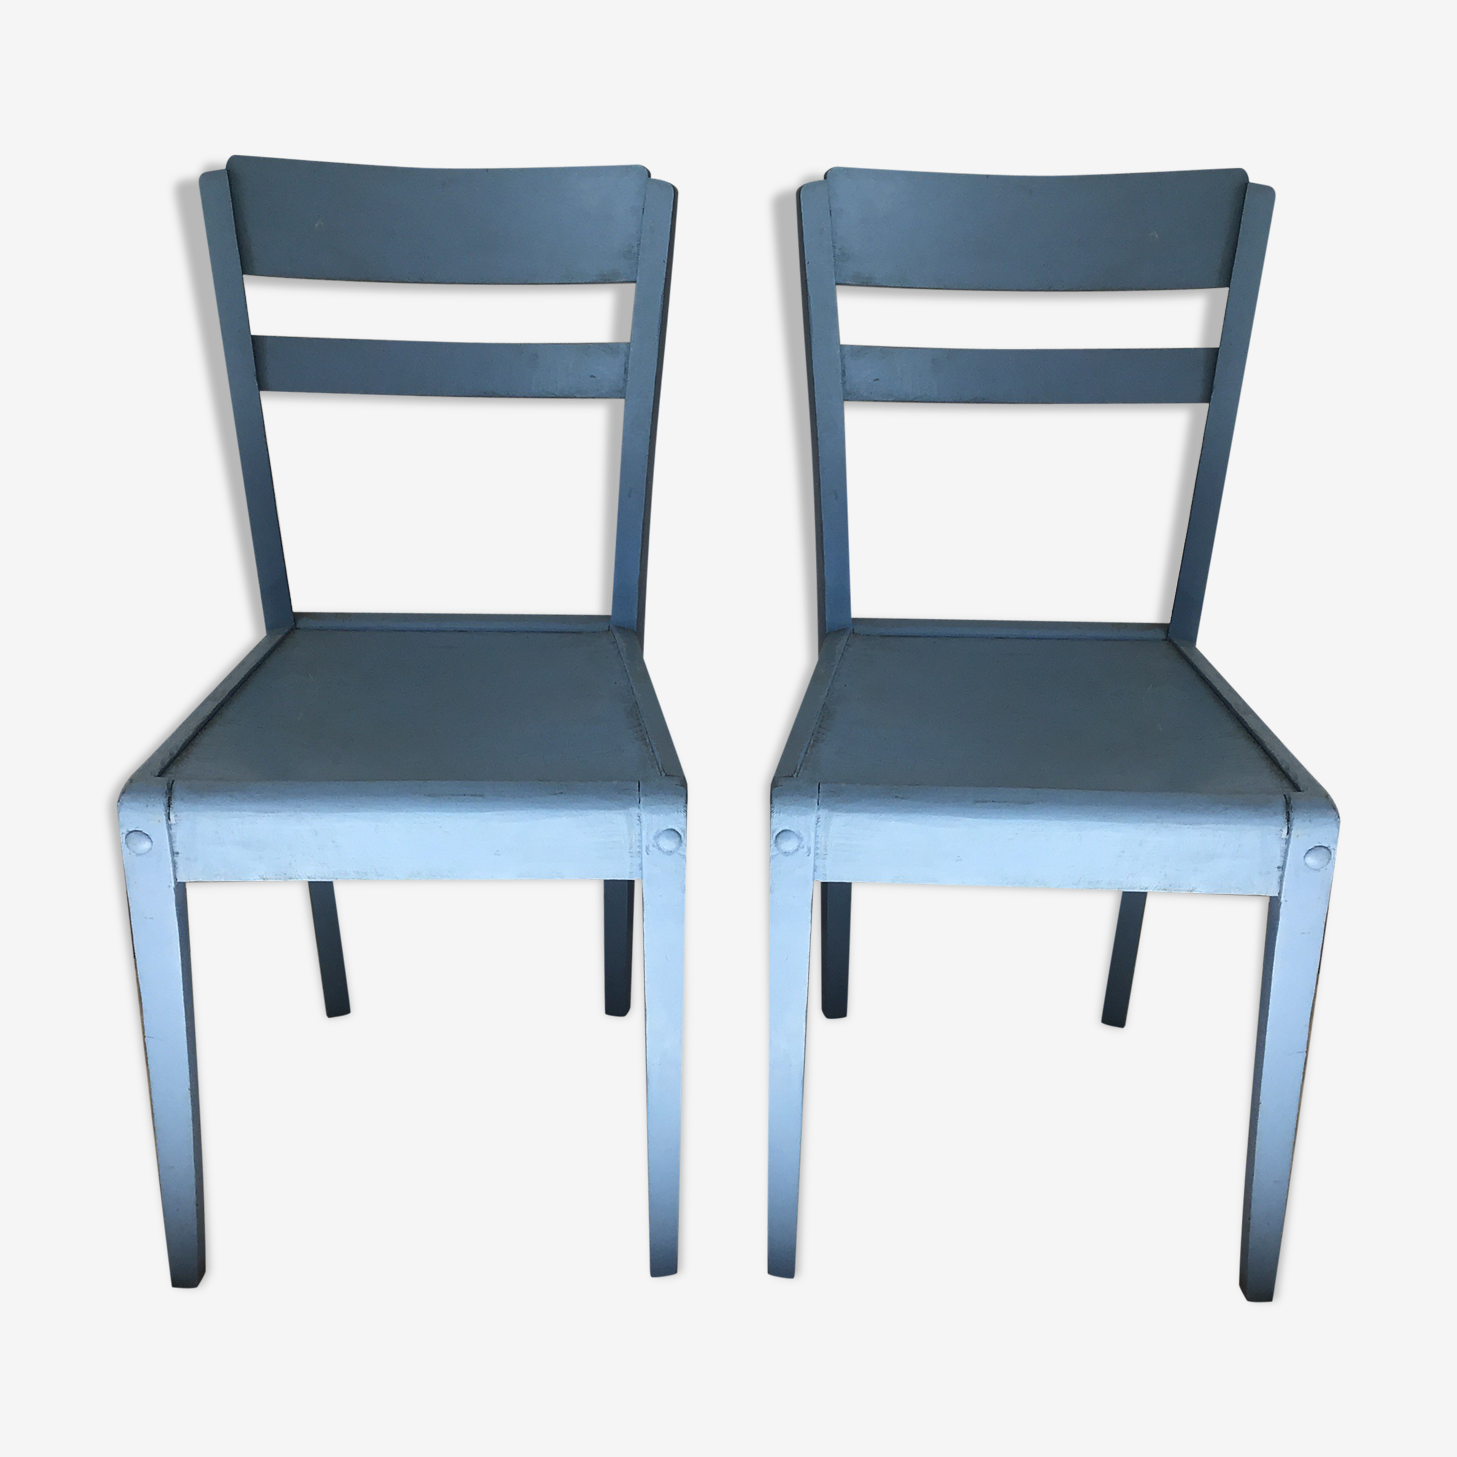 Pair of chairs by René Gabriel